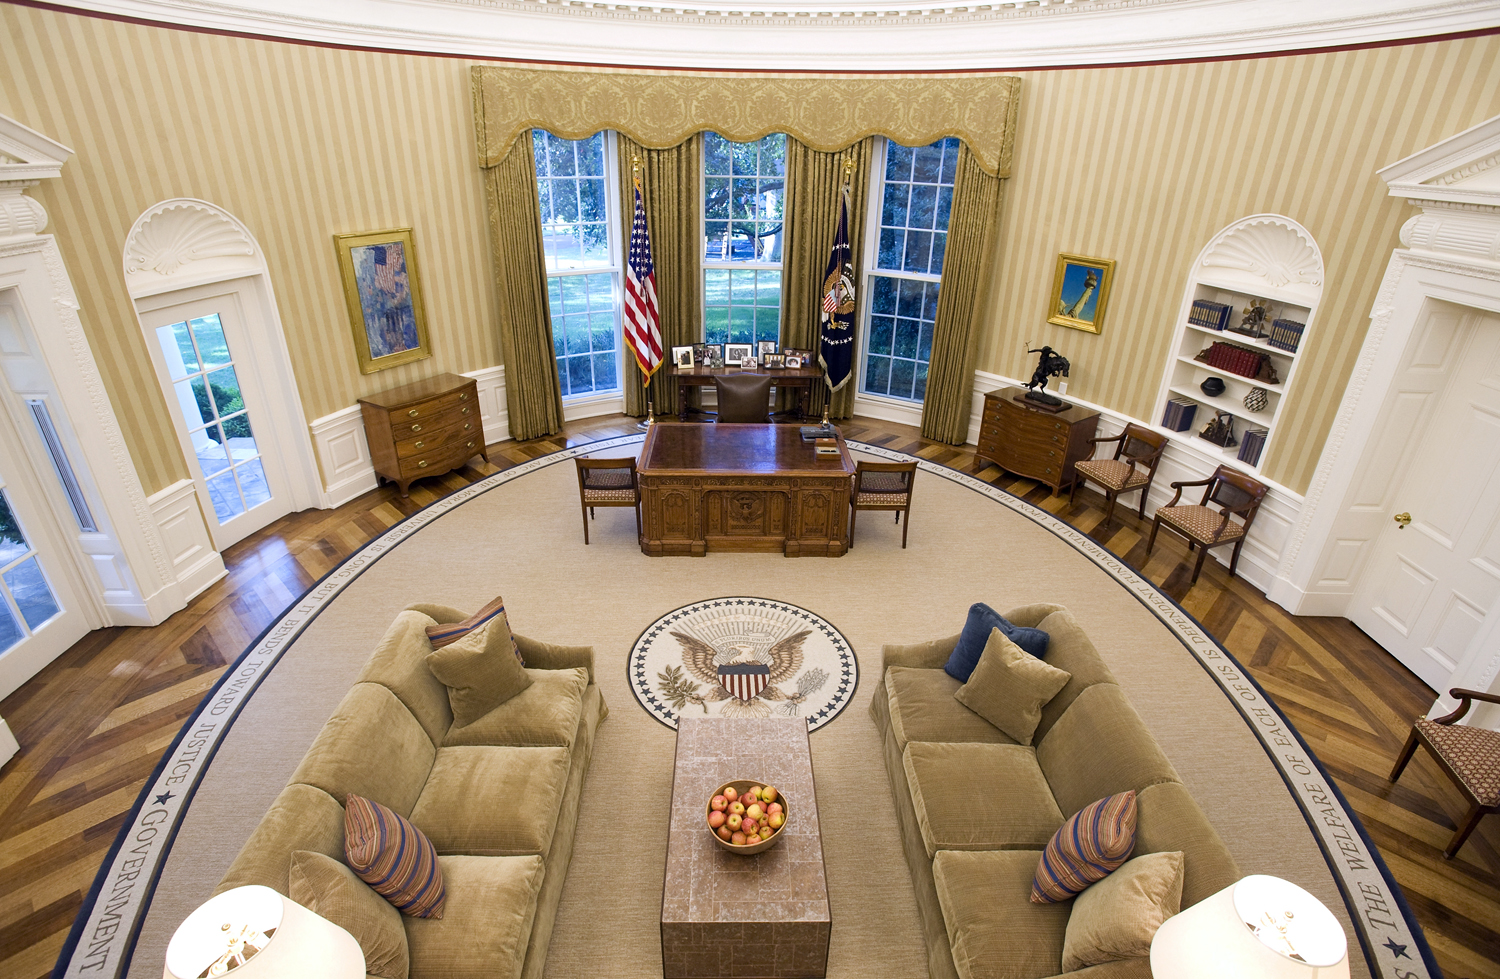 est100 一些攝影(some photos): Barack Obama, Oval Office. 歐巴馬 ...